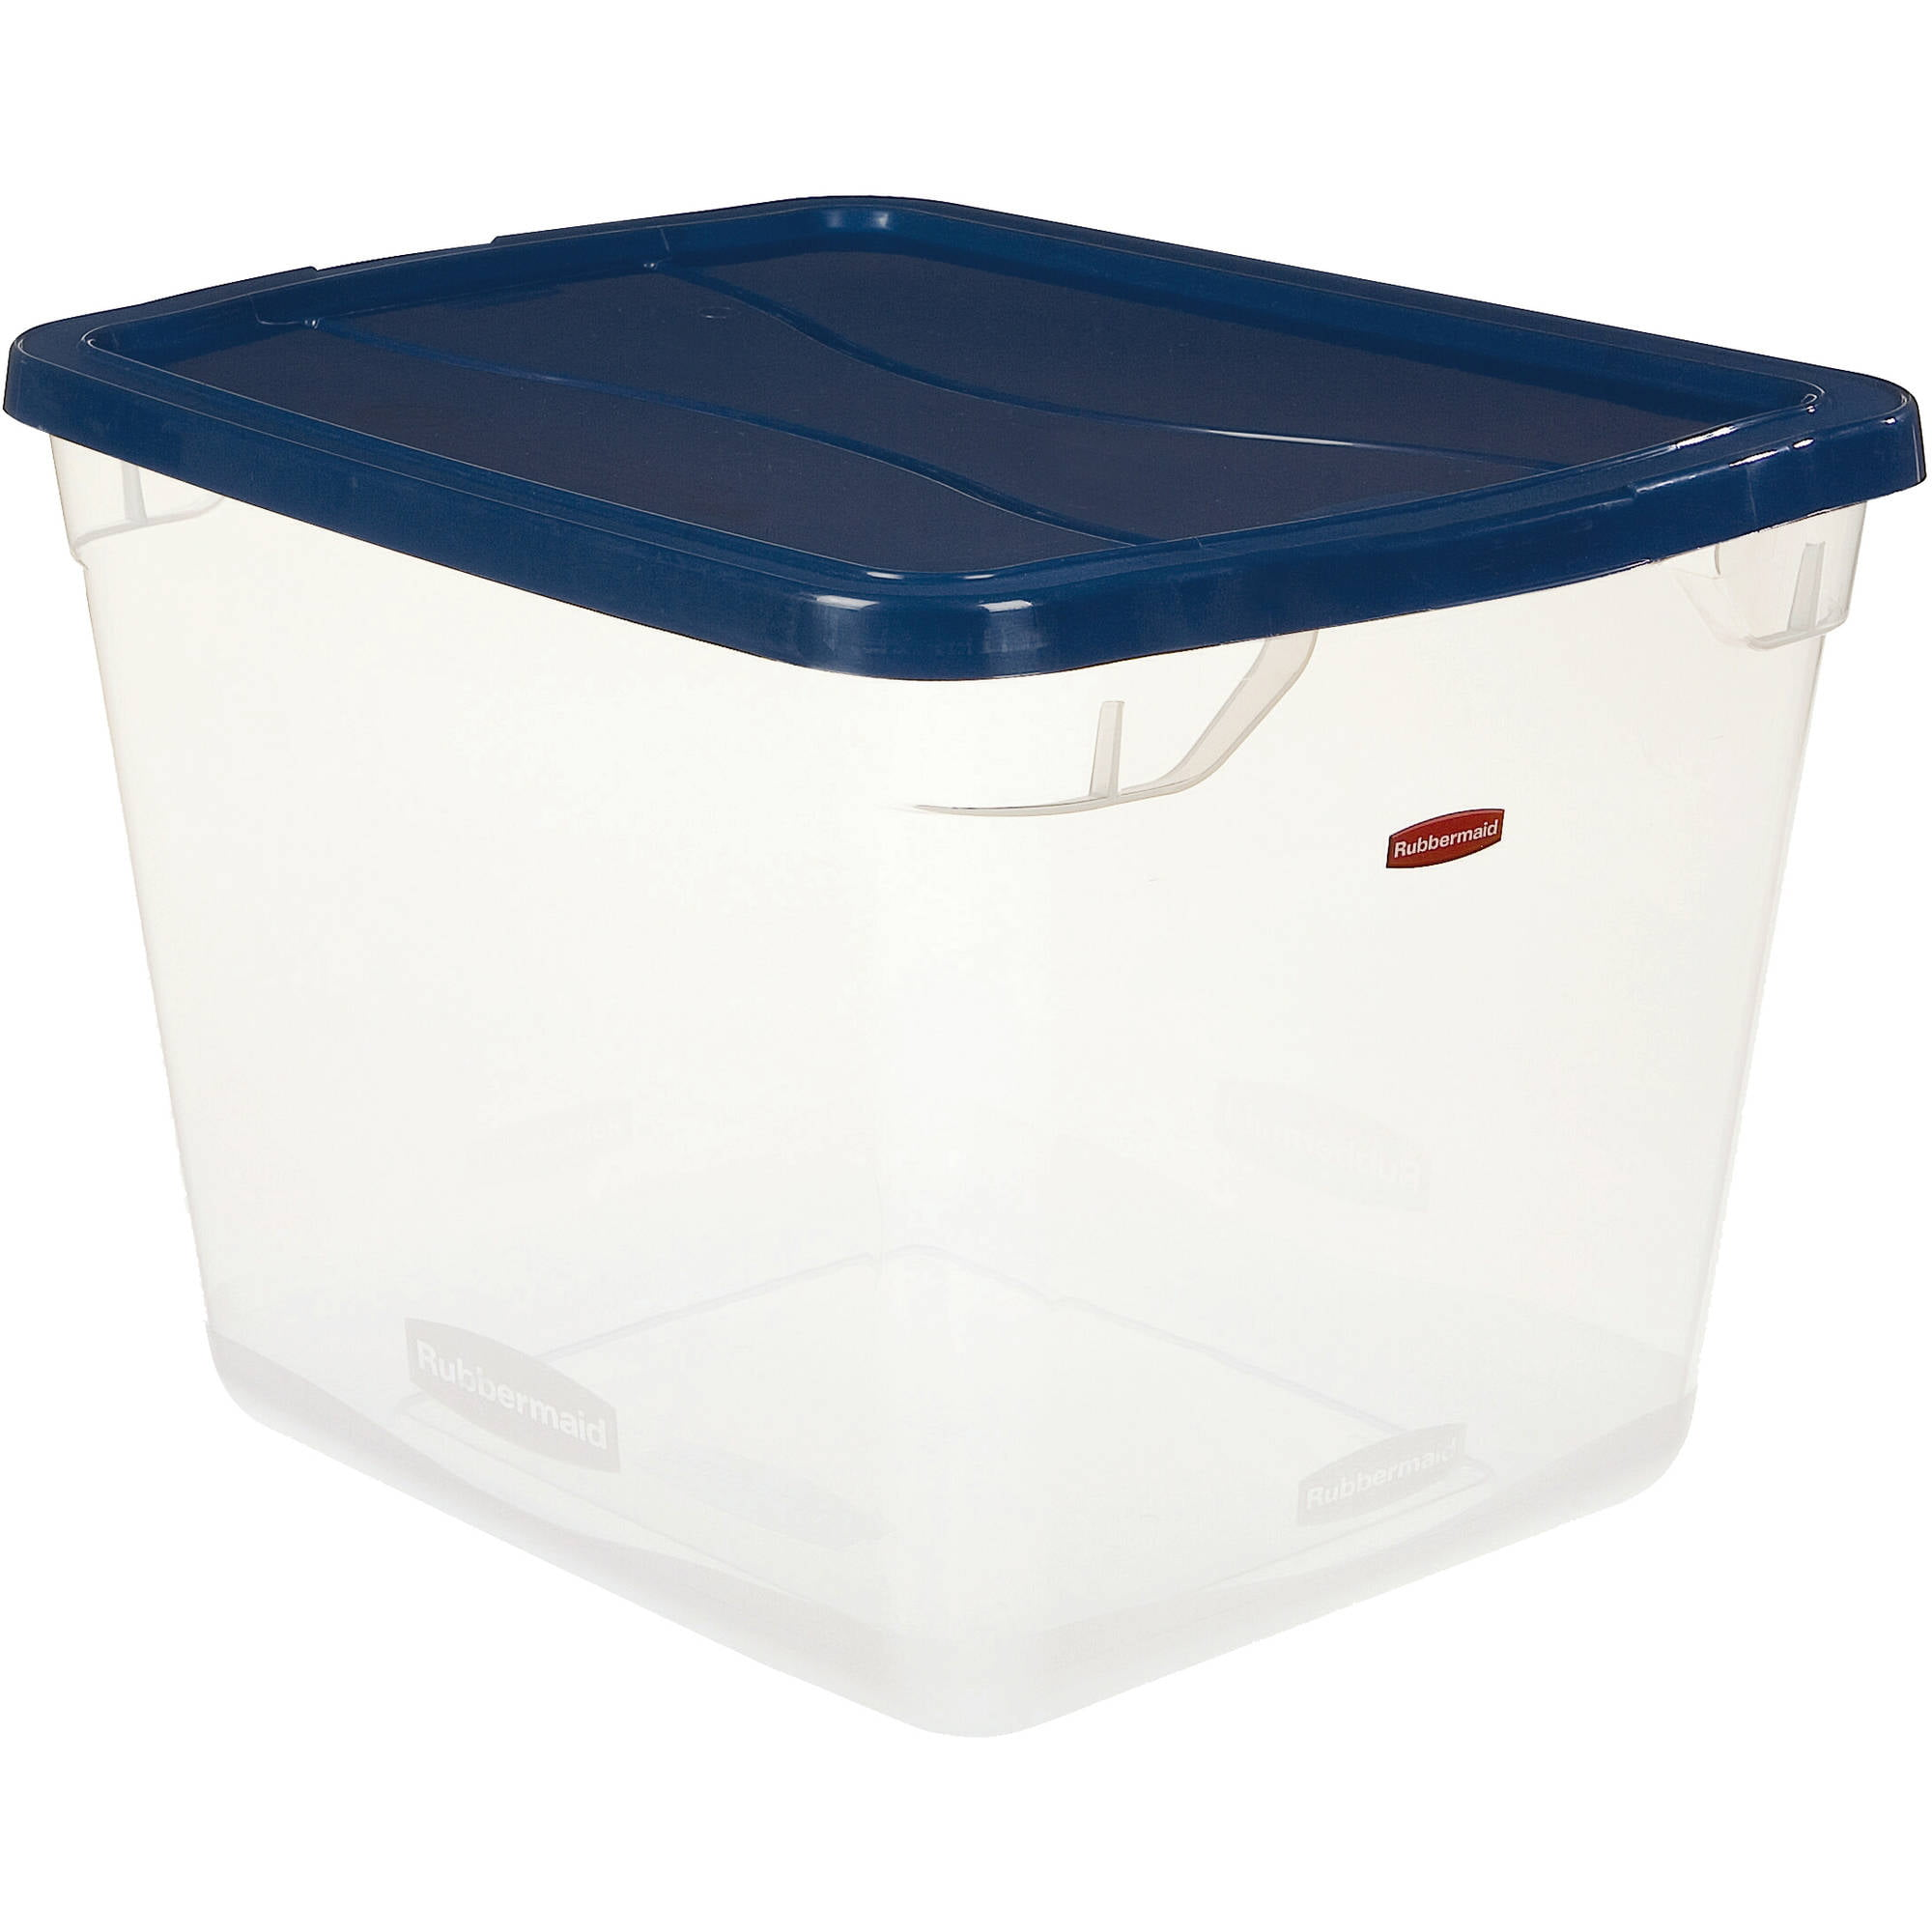 Wonderful Rubbermaid 7.5 Gallon / 30 Quart Plastic Storage Totes, Clear/ Blue (Set Of  8)   Walmart.com